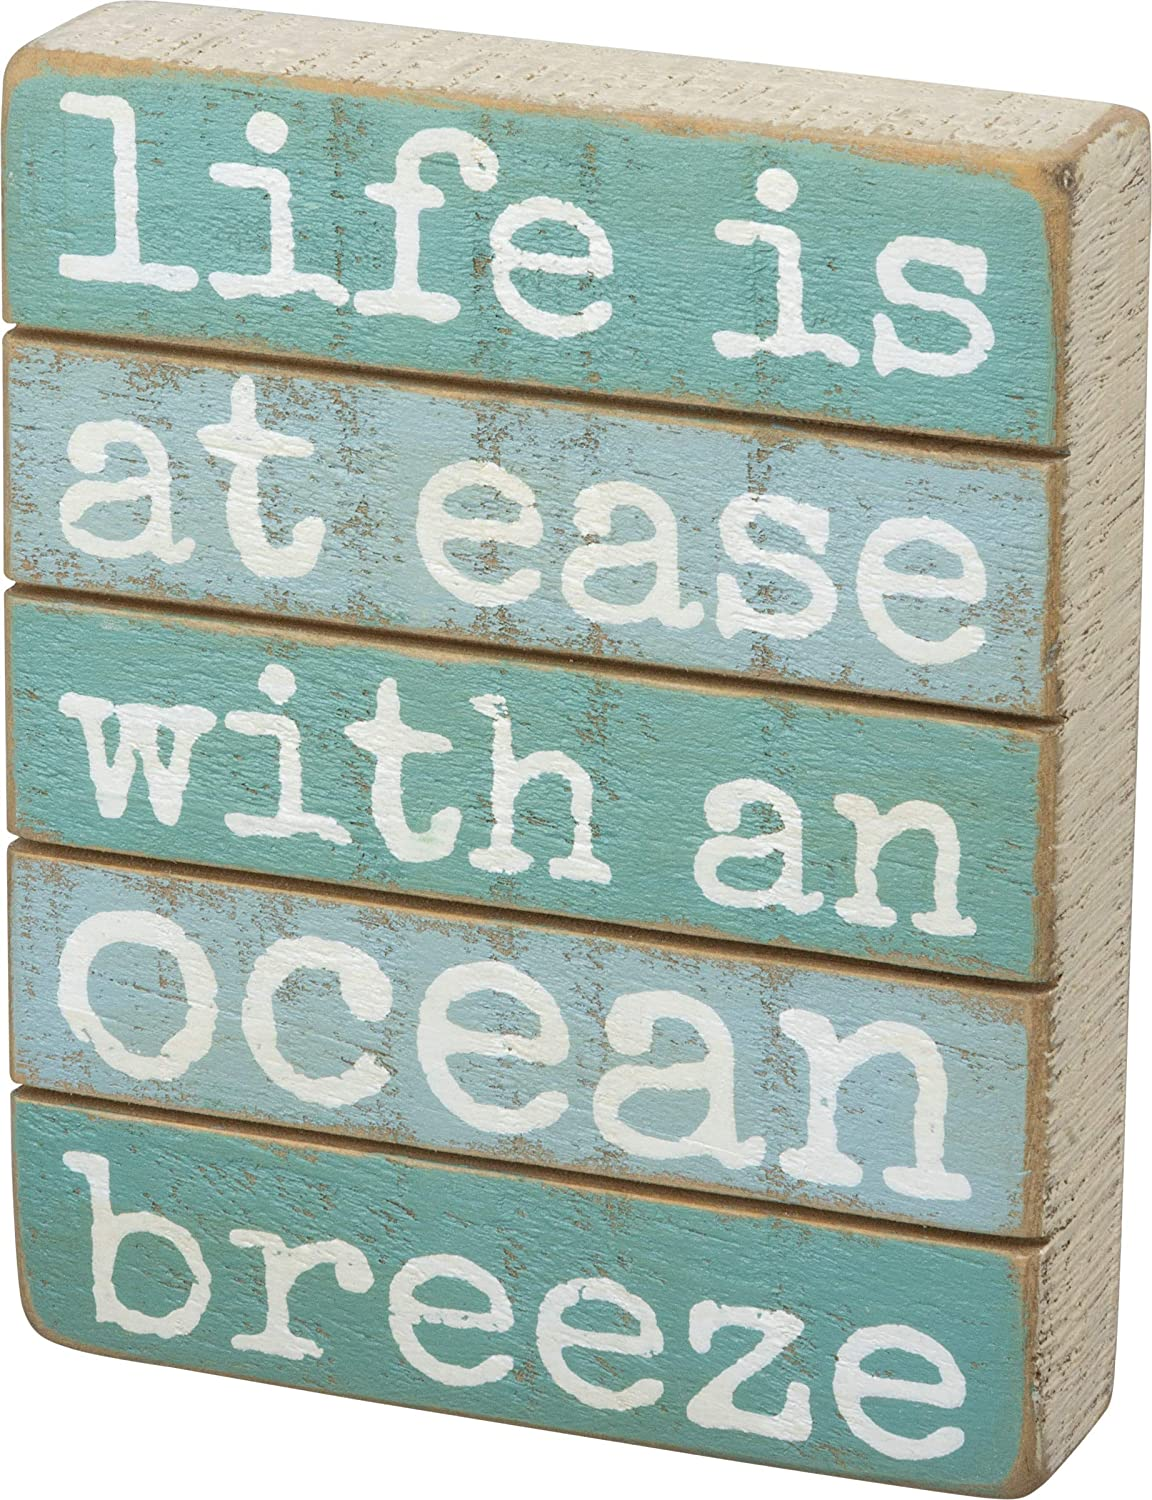 Primitives by Kathy 102968 Slat Wood Box Sign, 4 x 5-Inches, at Ease with an Ocean Breeze